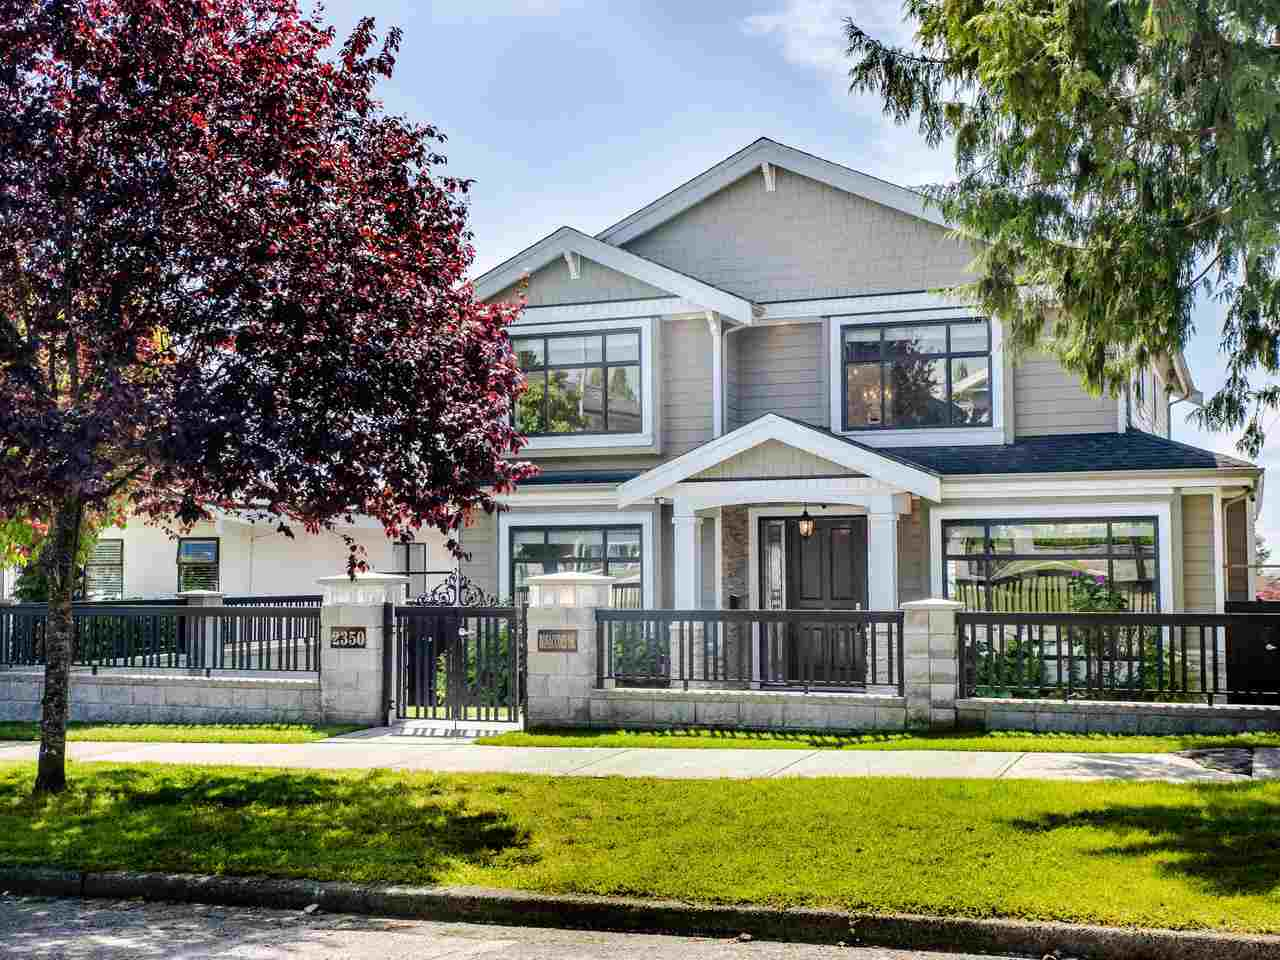 FEATURED LISTING: 2350 BONACCORD Drive Vancouver